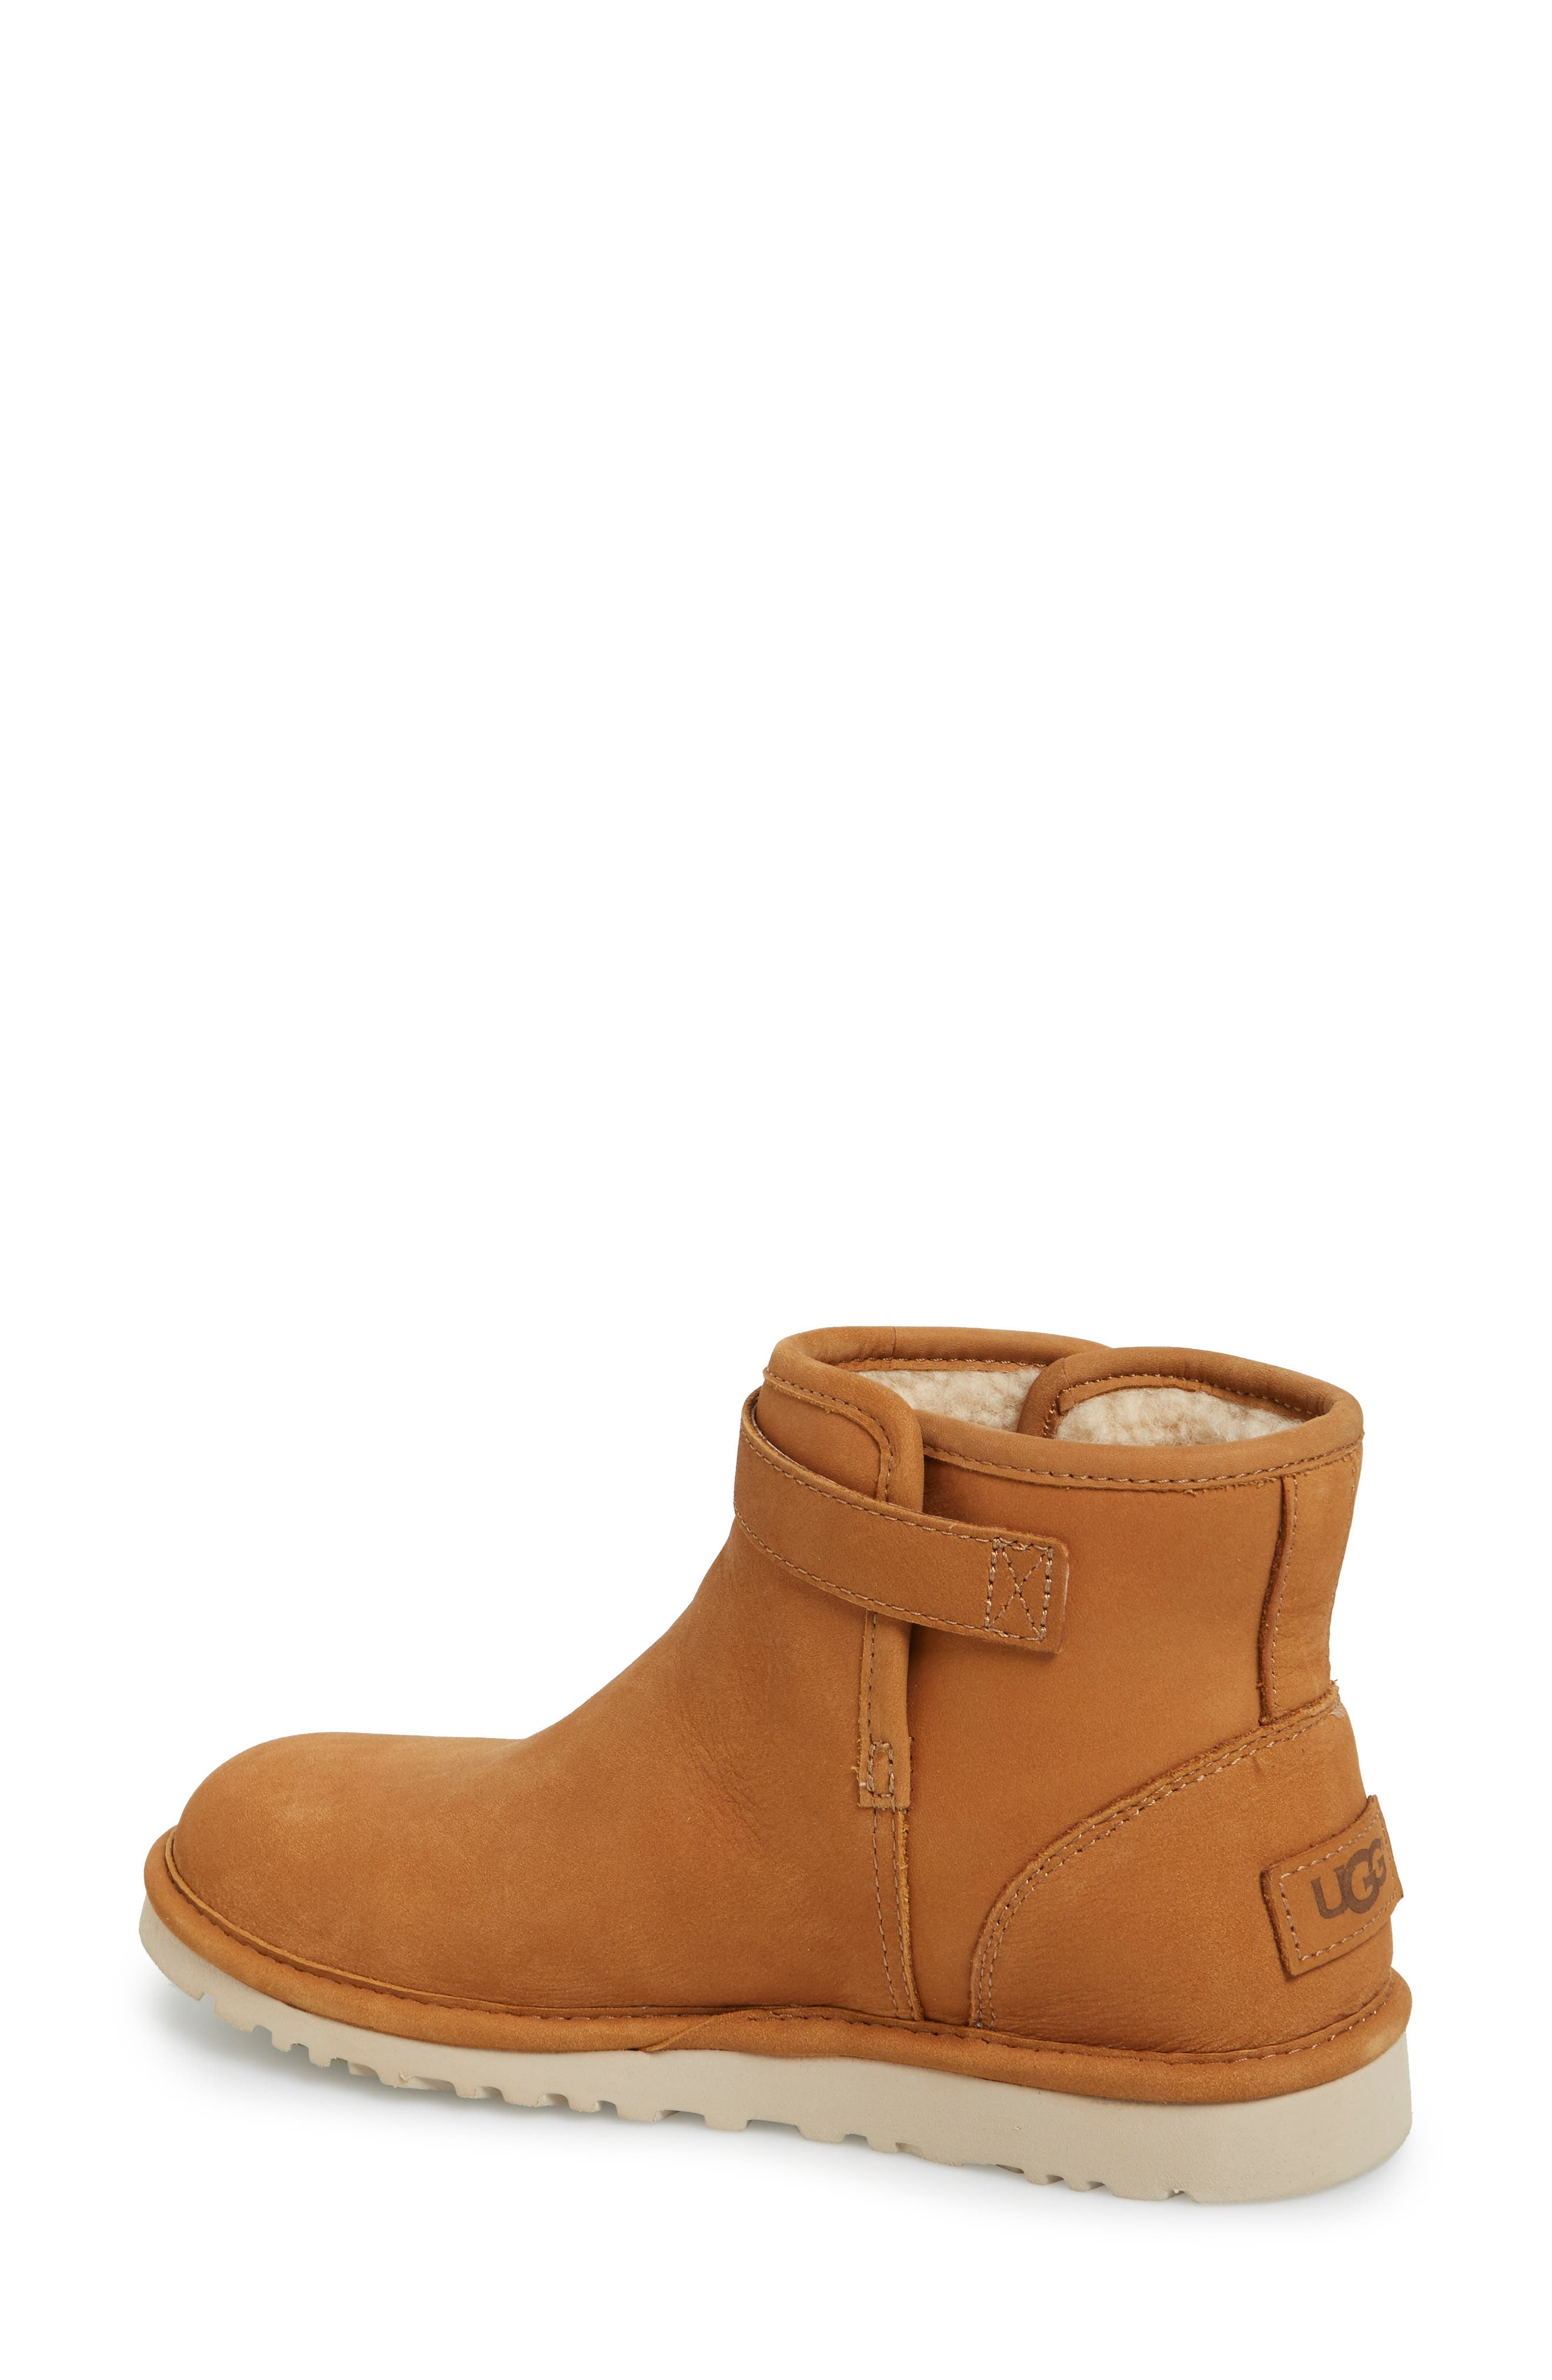 'Rella' Leather Ankle Boot,                             Alternate thumbnail 6, color,                             219